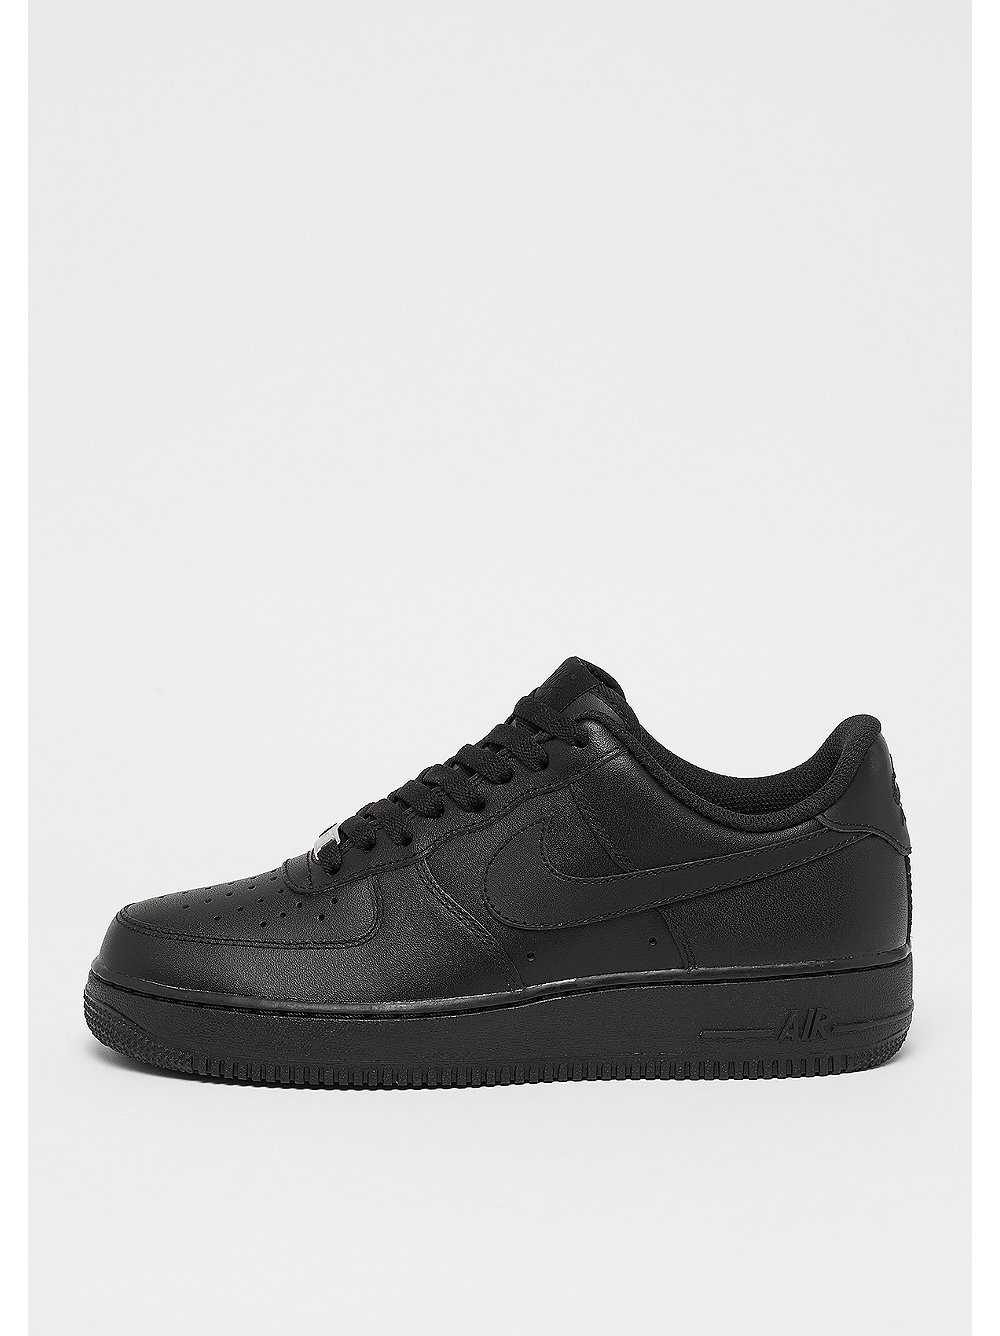 Air force one nike online shop